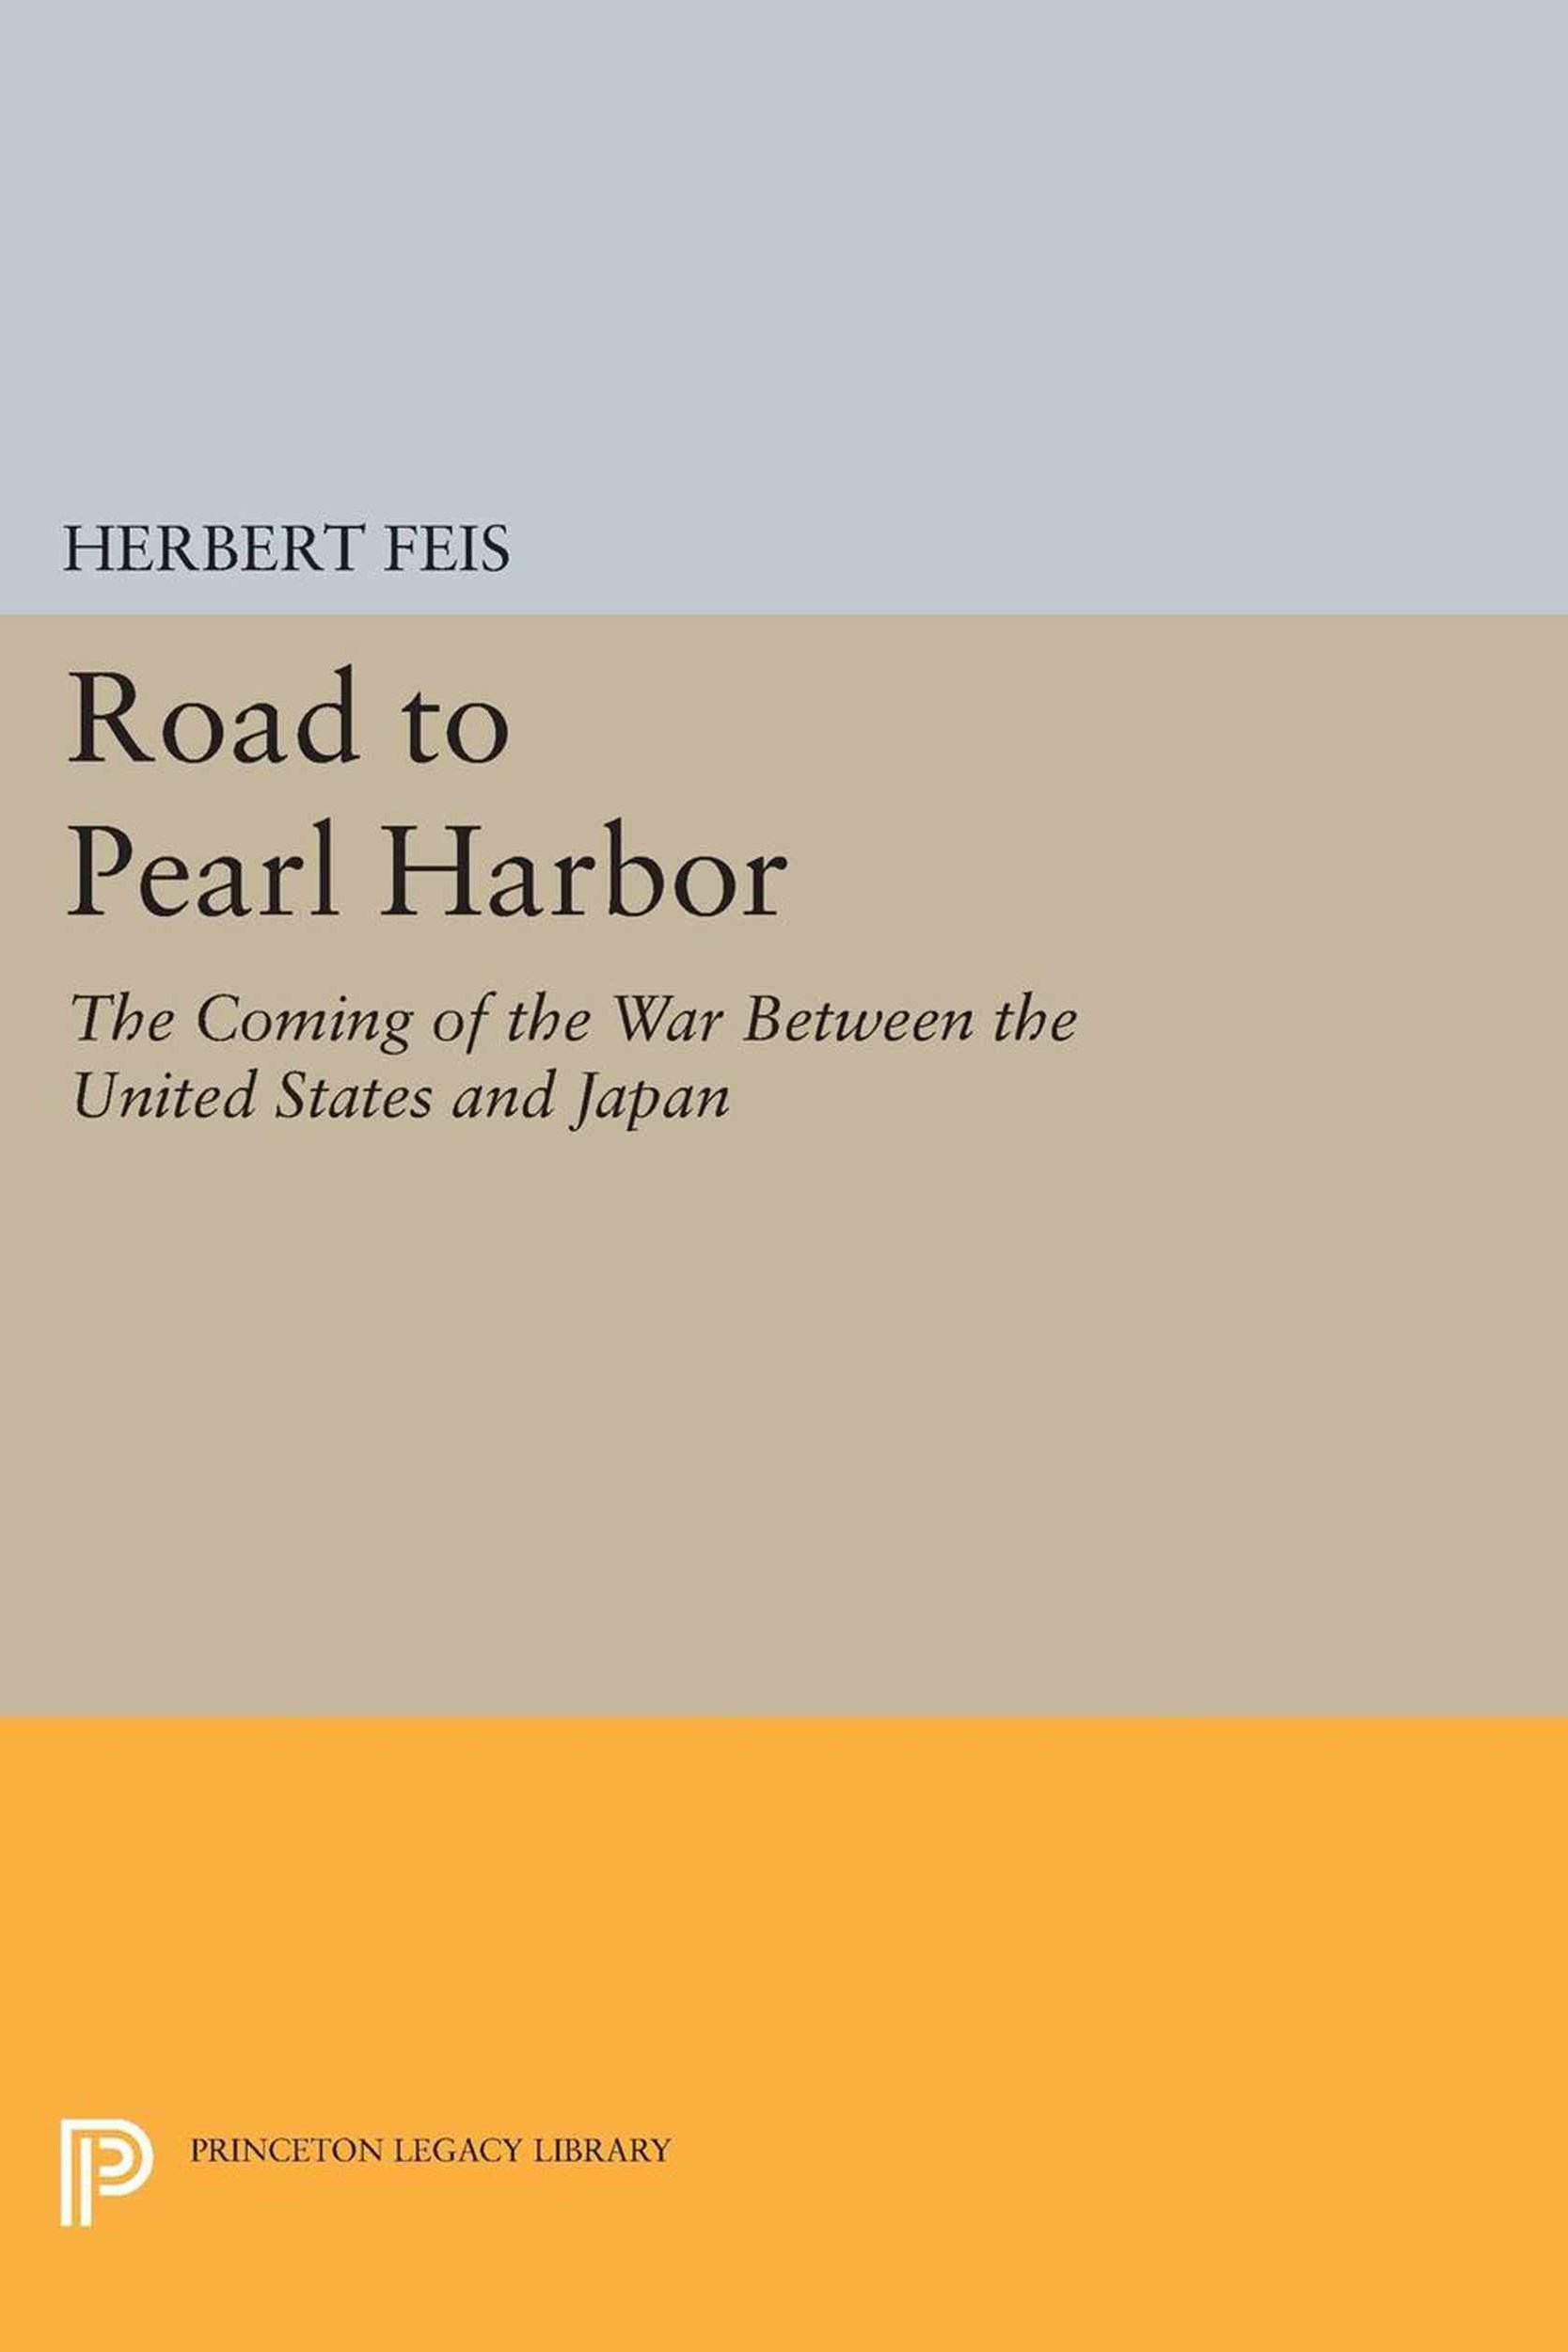 Road to Pearl Harbor